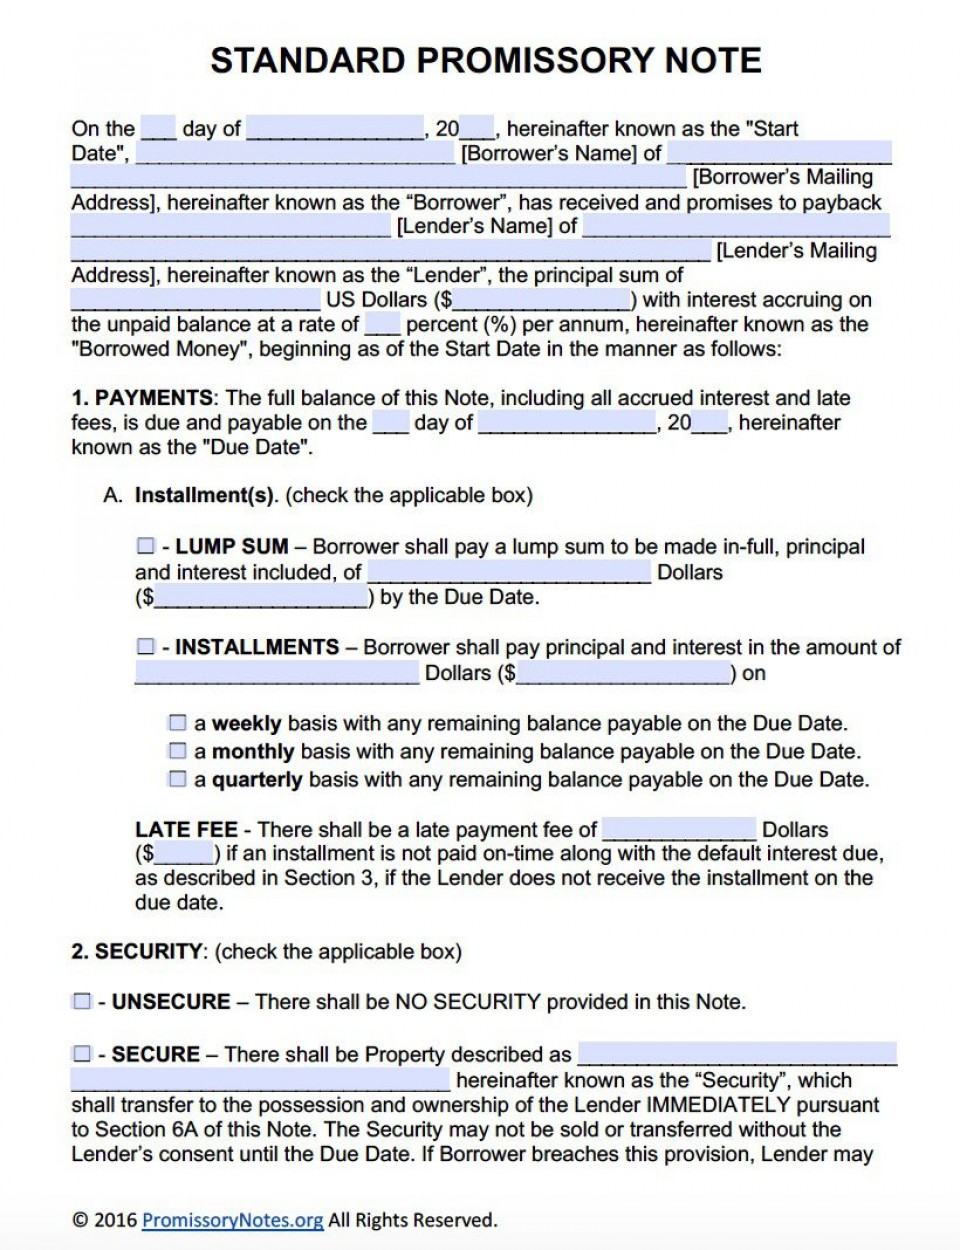 007 Unique Promissory Note Template Word High Def  Form Document Free Sample960